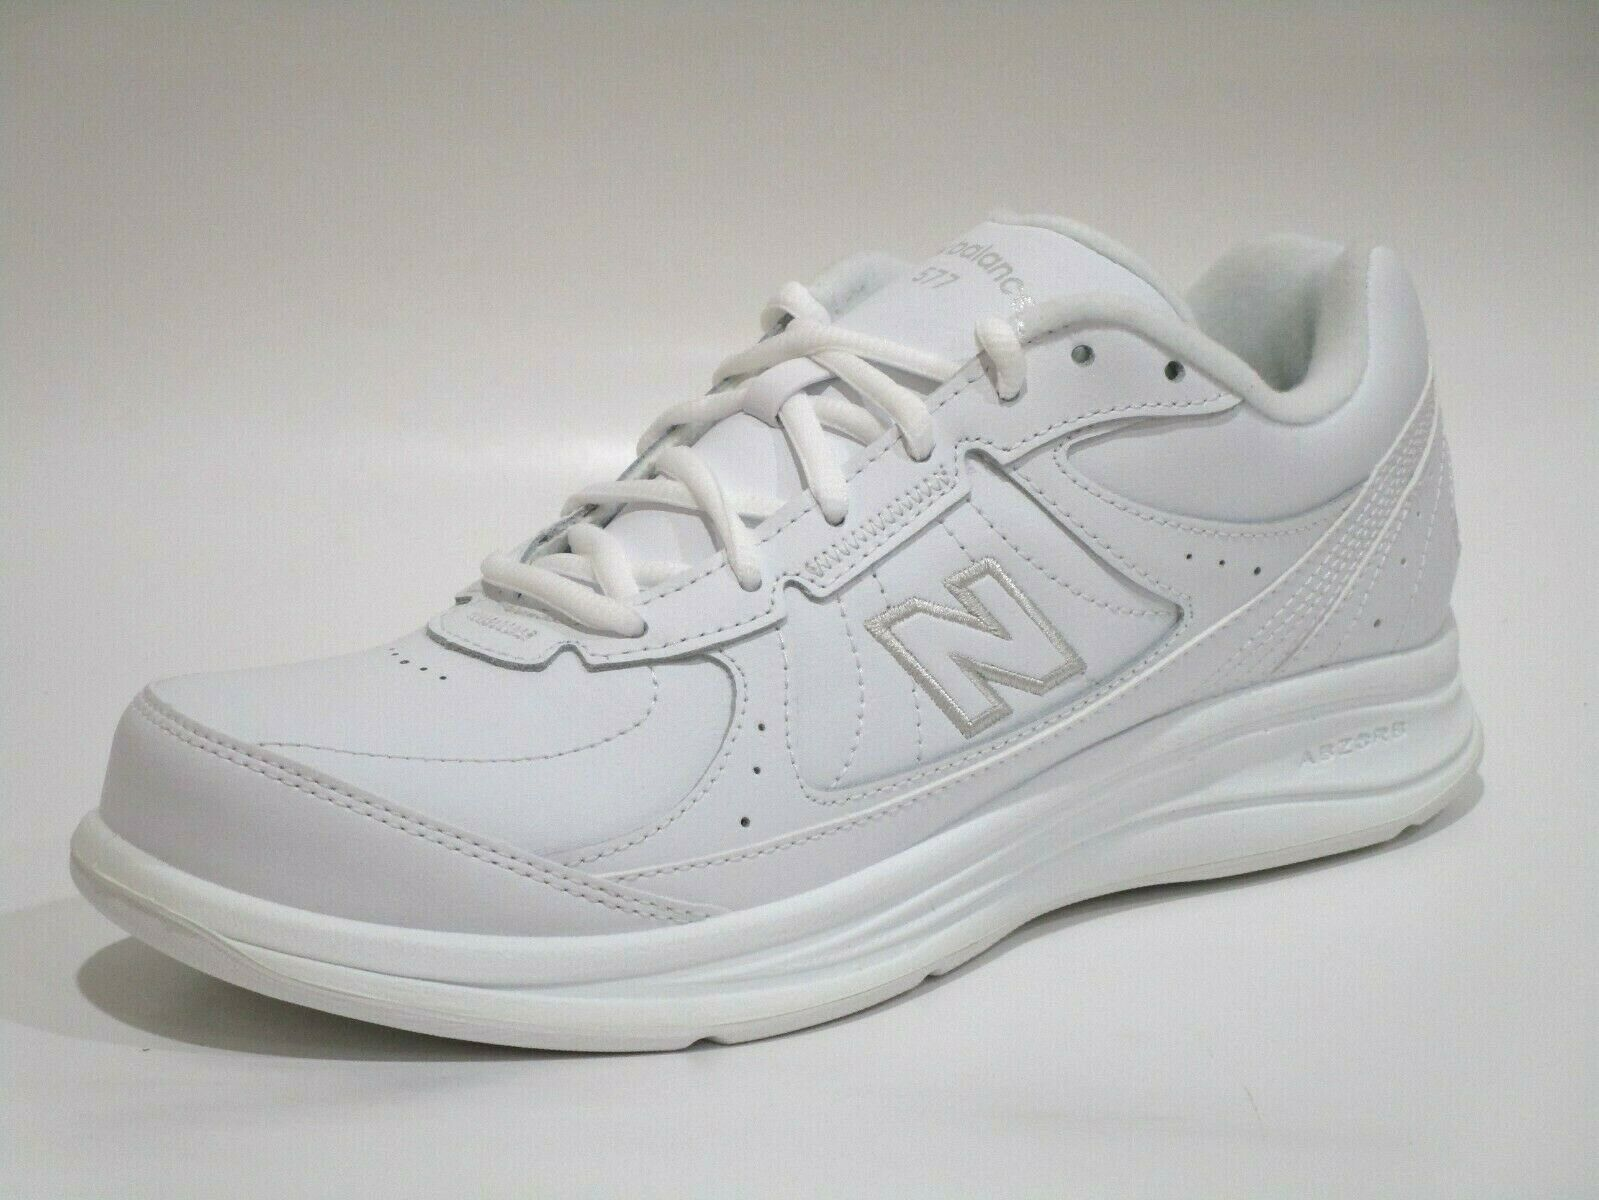 New Balance Made in USA Men's 577 V1 Lace-up Walking Shoes